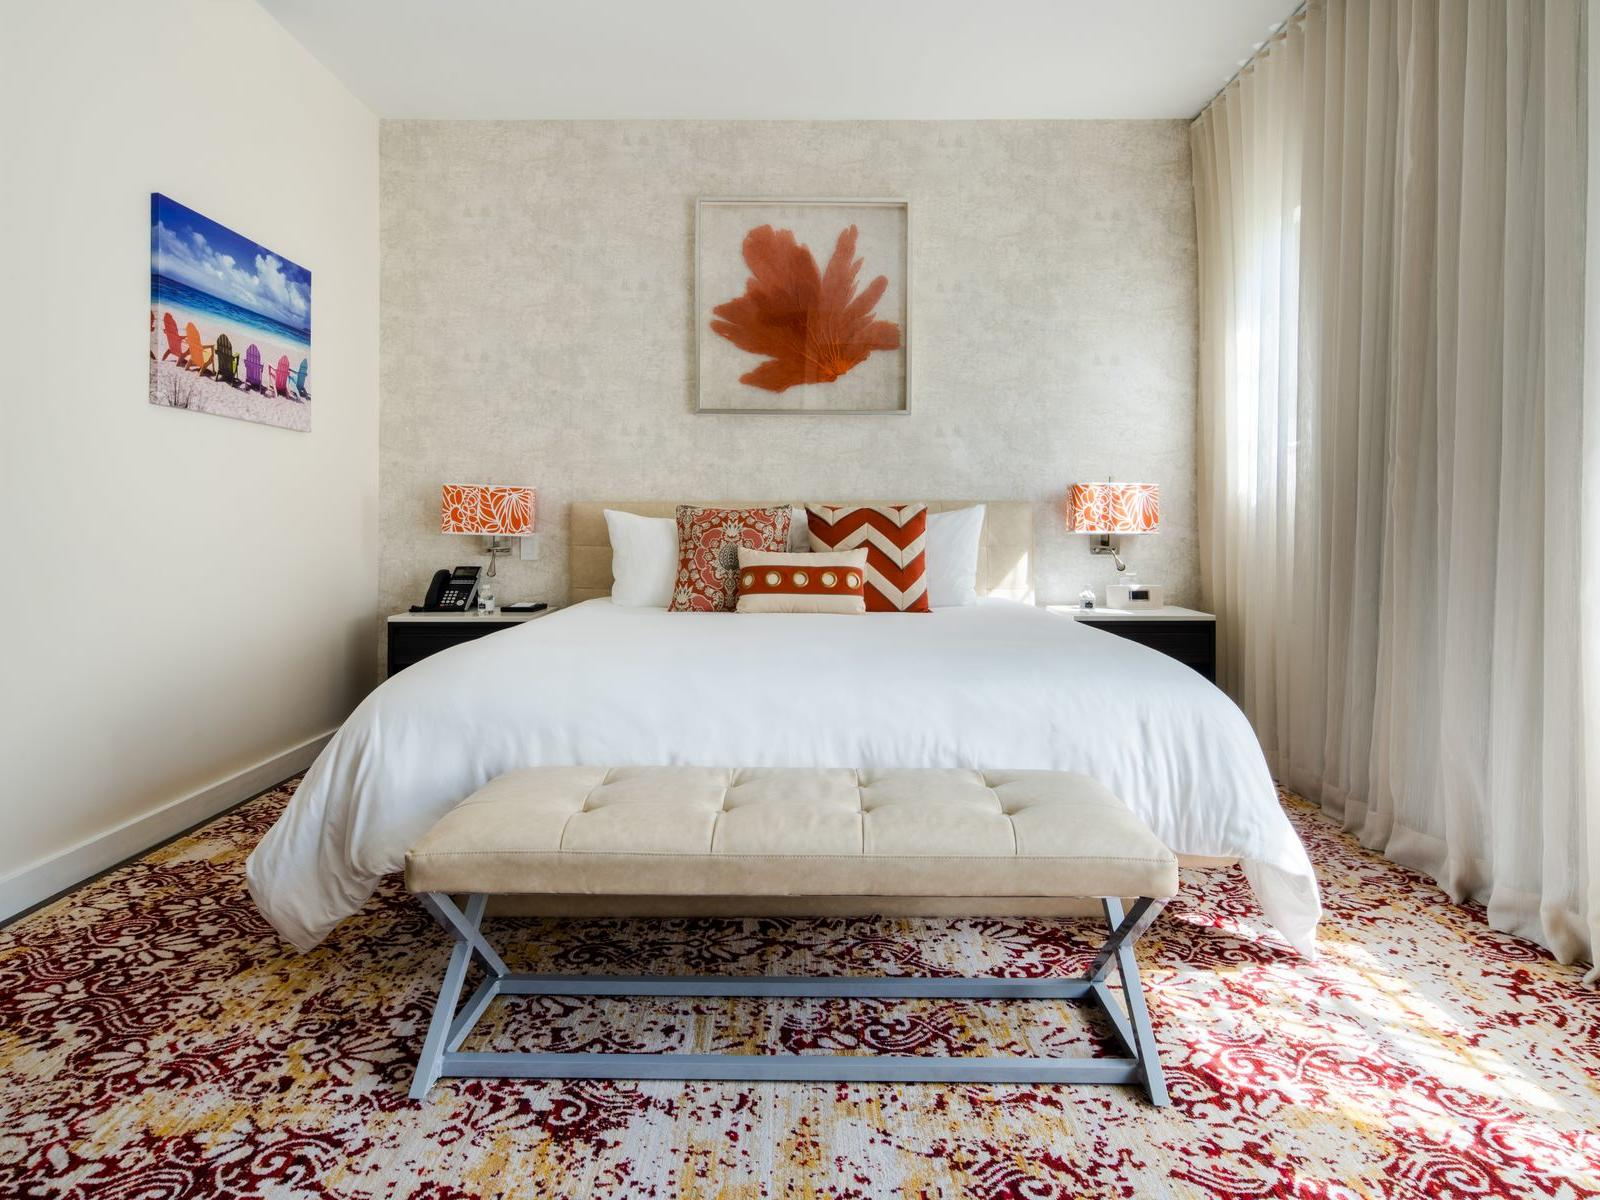 large bed in carpeted room with wall art